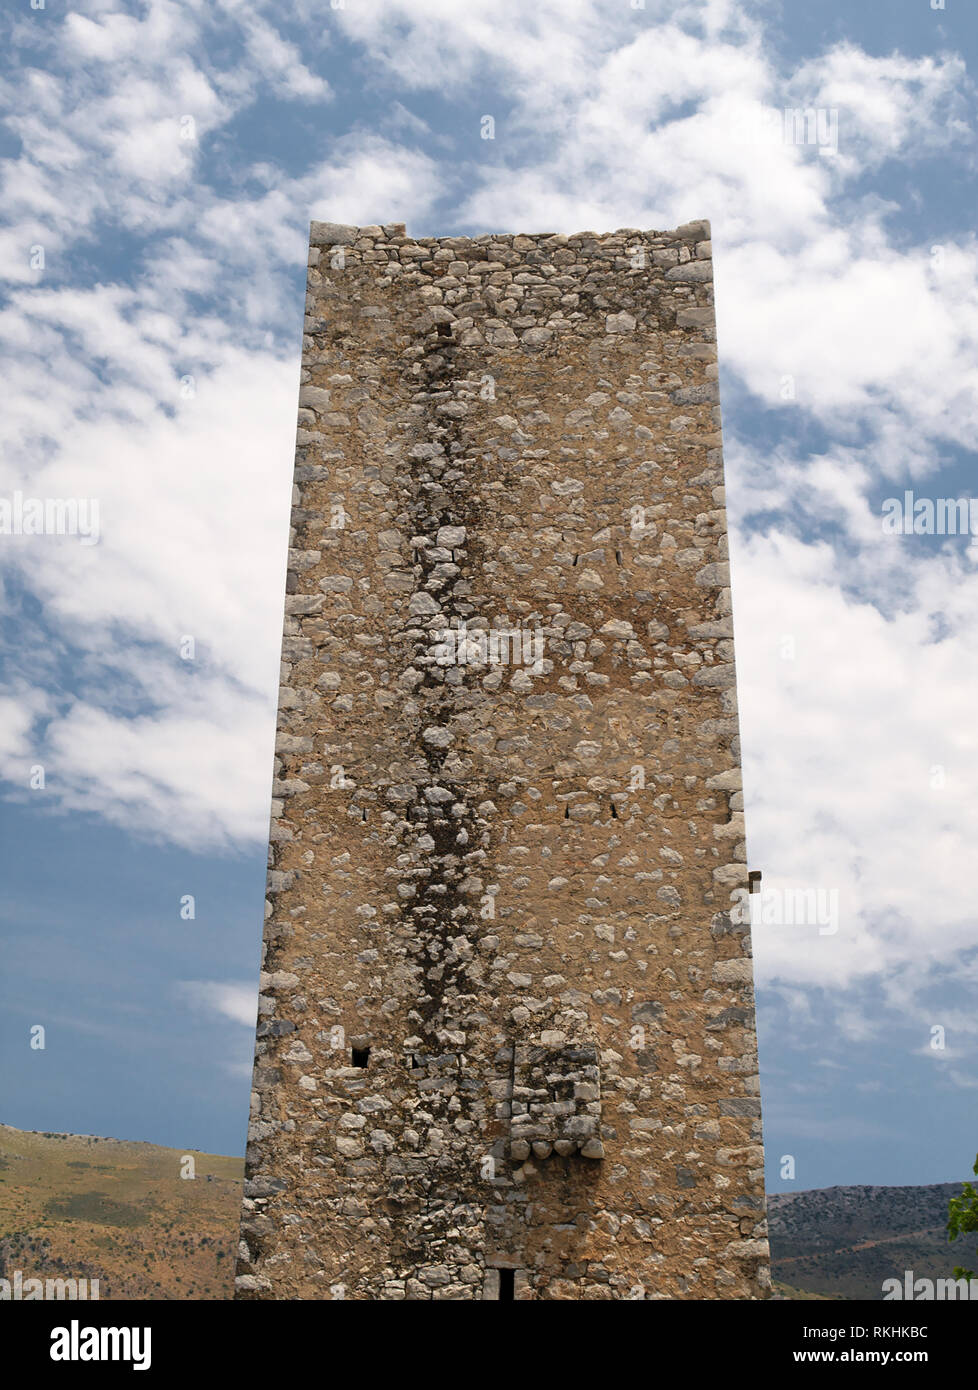 Old stone tower housed in traditional medieval village in Mani, Greece. - Stock Image